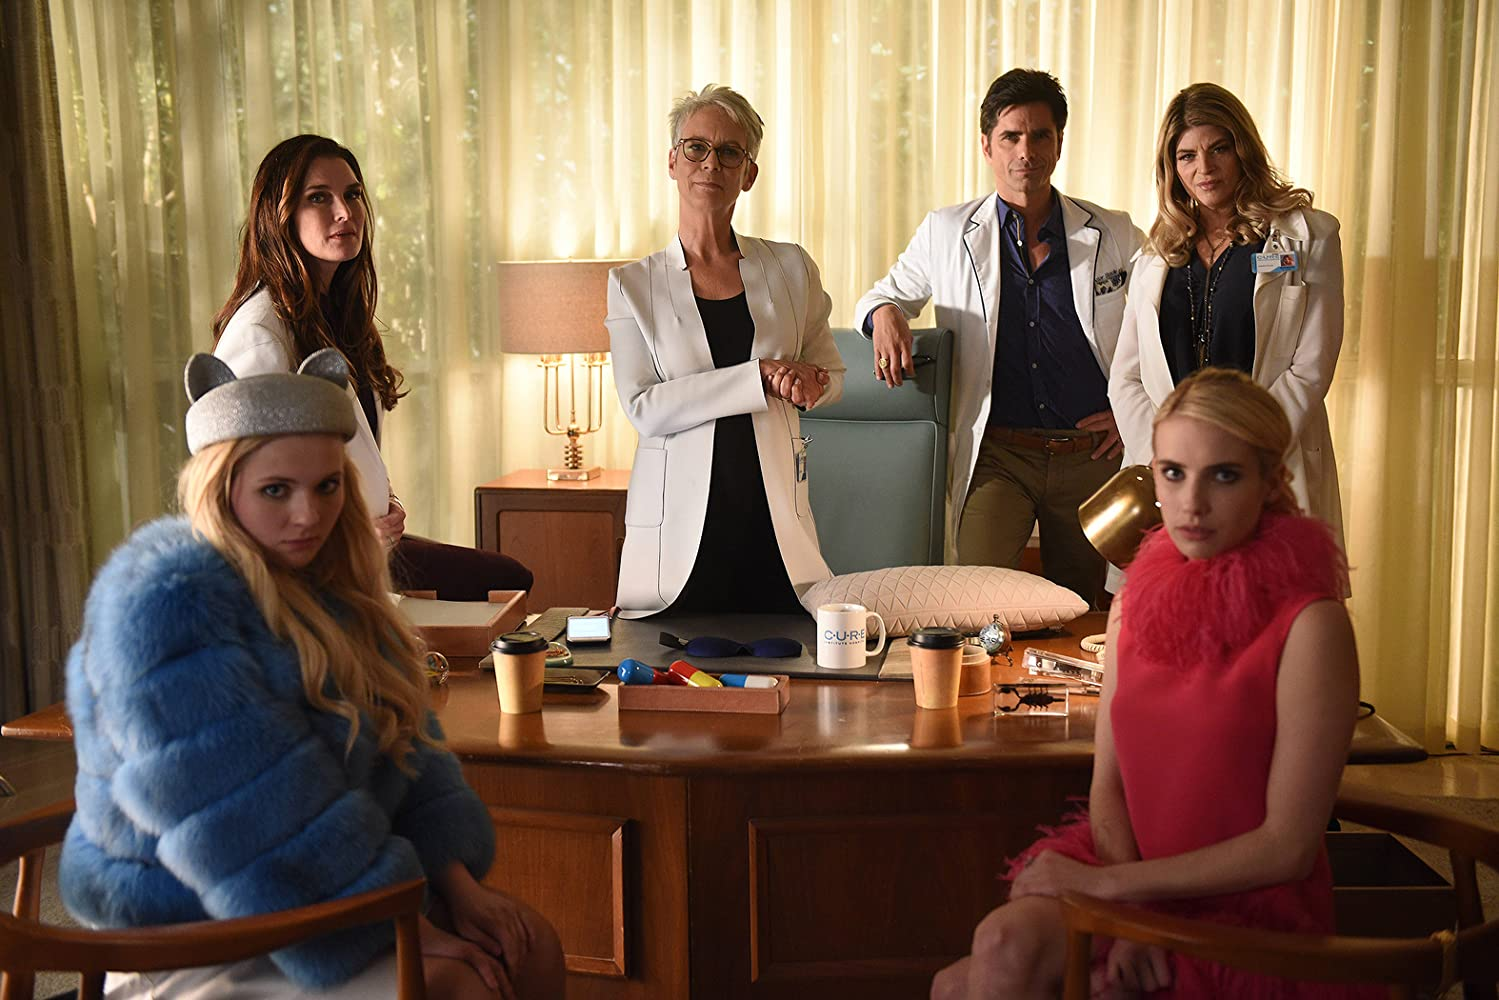 Jamie Lee Curtis, Brooke Shields, Kirstie Alley, John Stamos, Emma Roberts, and Abigail Breslin in Scream Queens (2015)